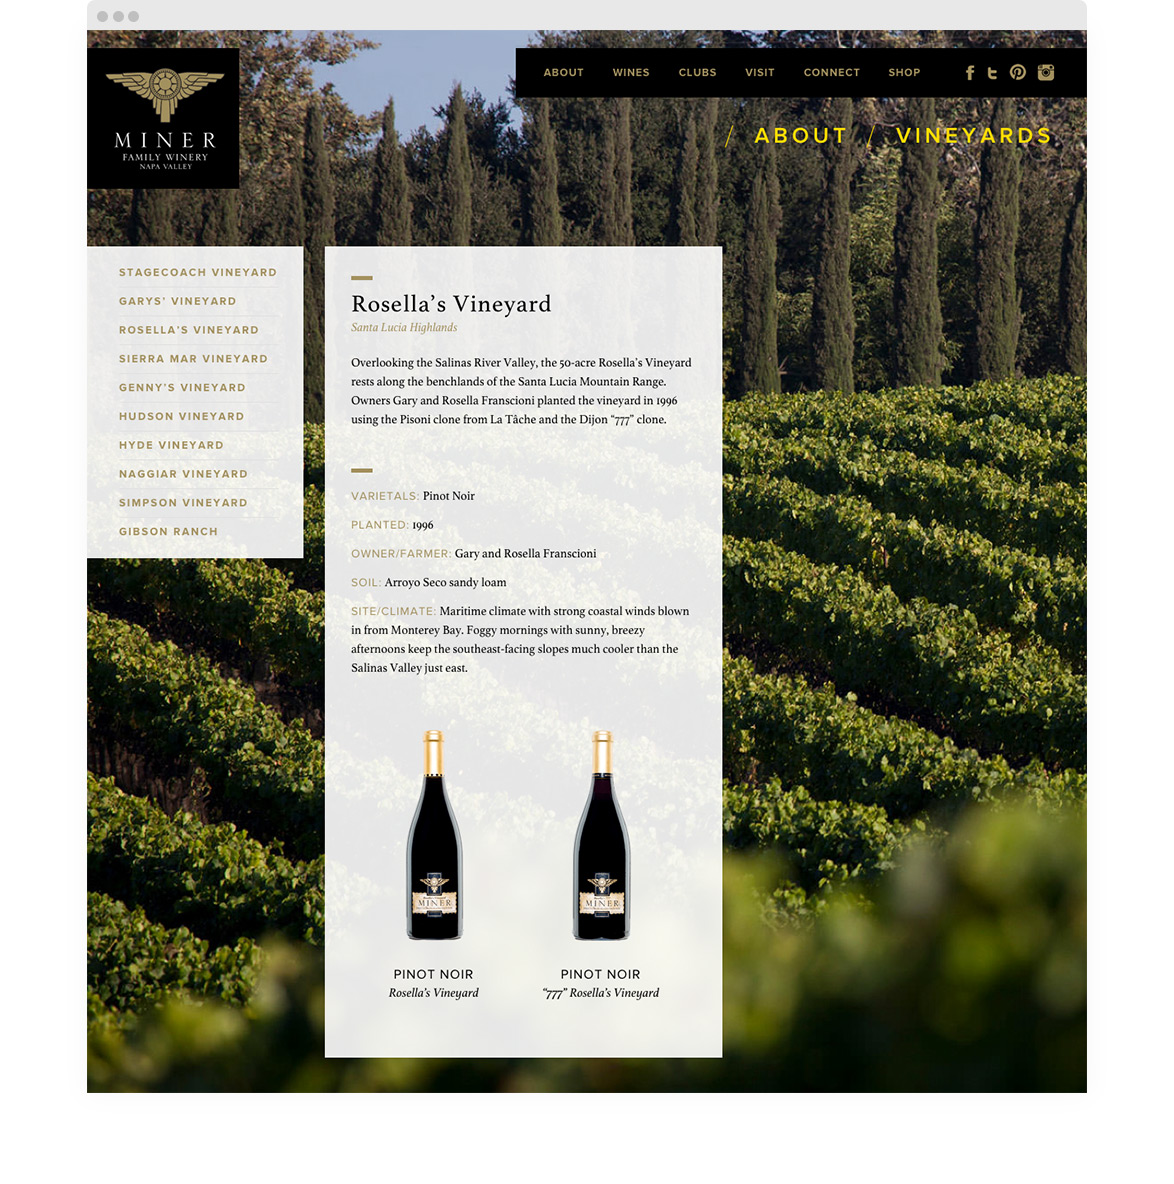 Kymera - Miner Family Winery